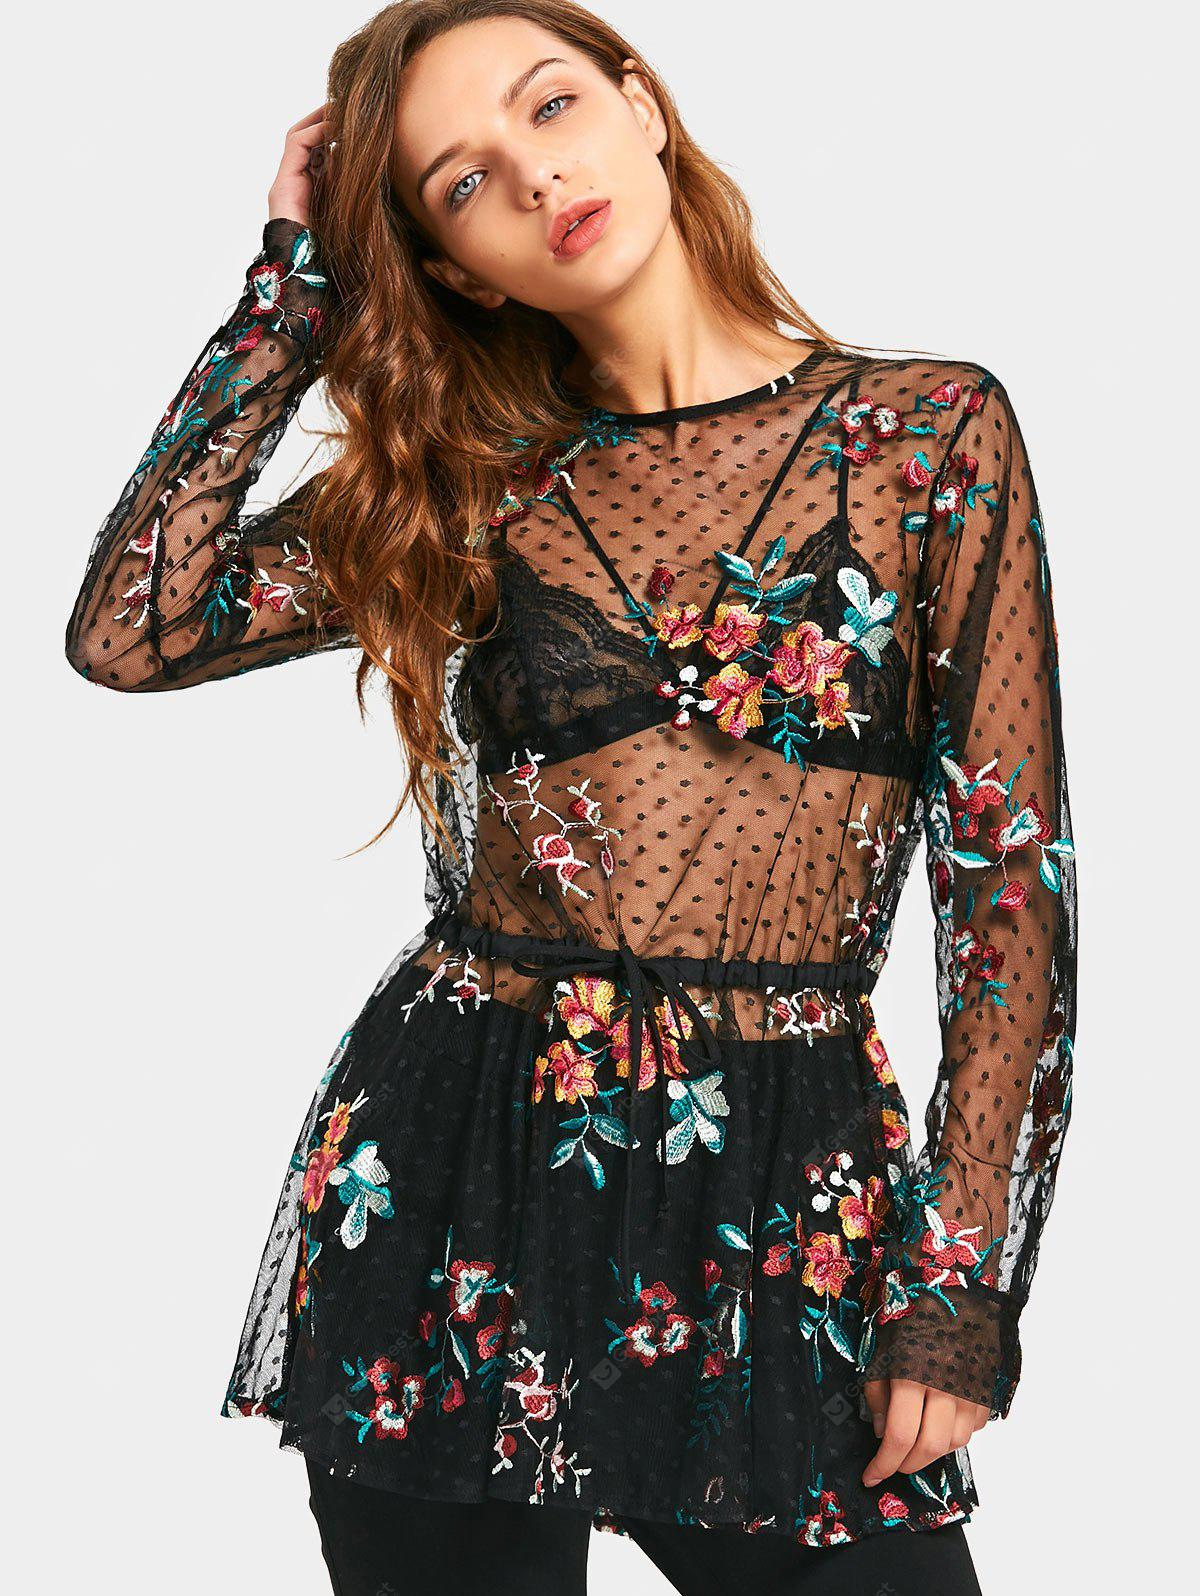 BLACK S See Thru Floral Embroidered Ruffles Blouse